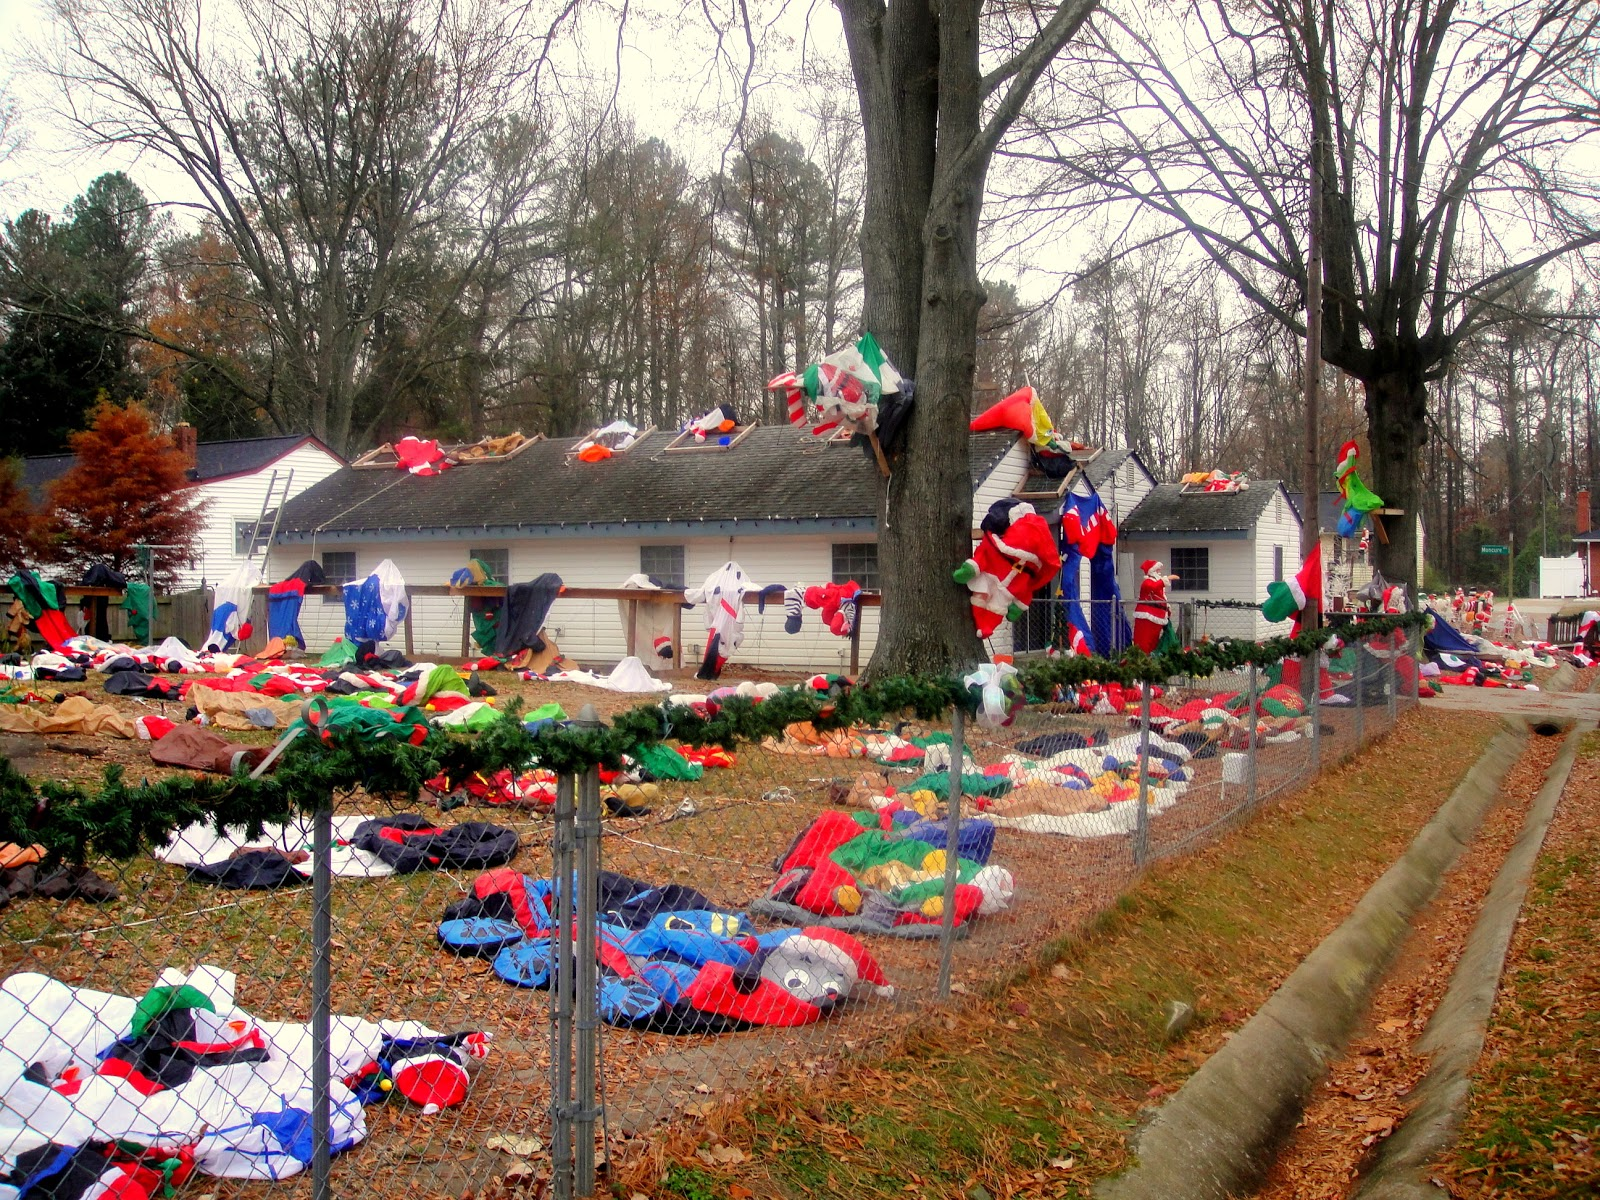 My Neighbor S Lawn With All Of Its Deflated Christmas Inflatables Looks Like A Grisly North Pole Crime Scene